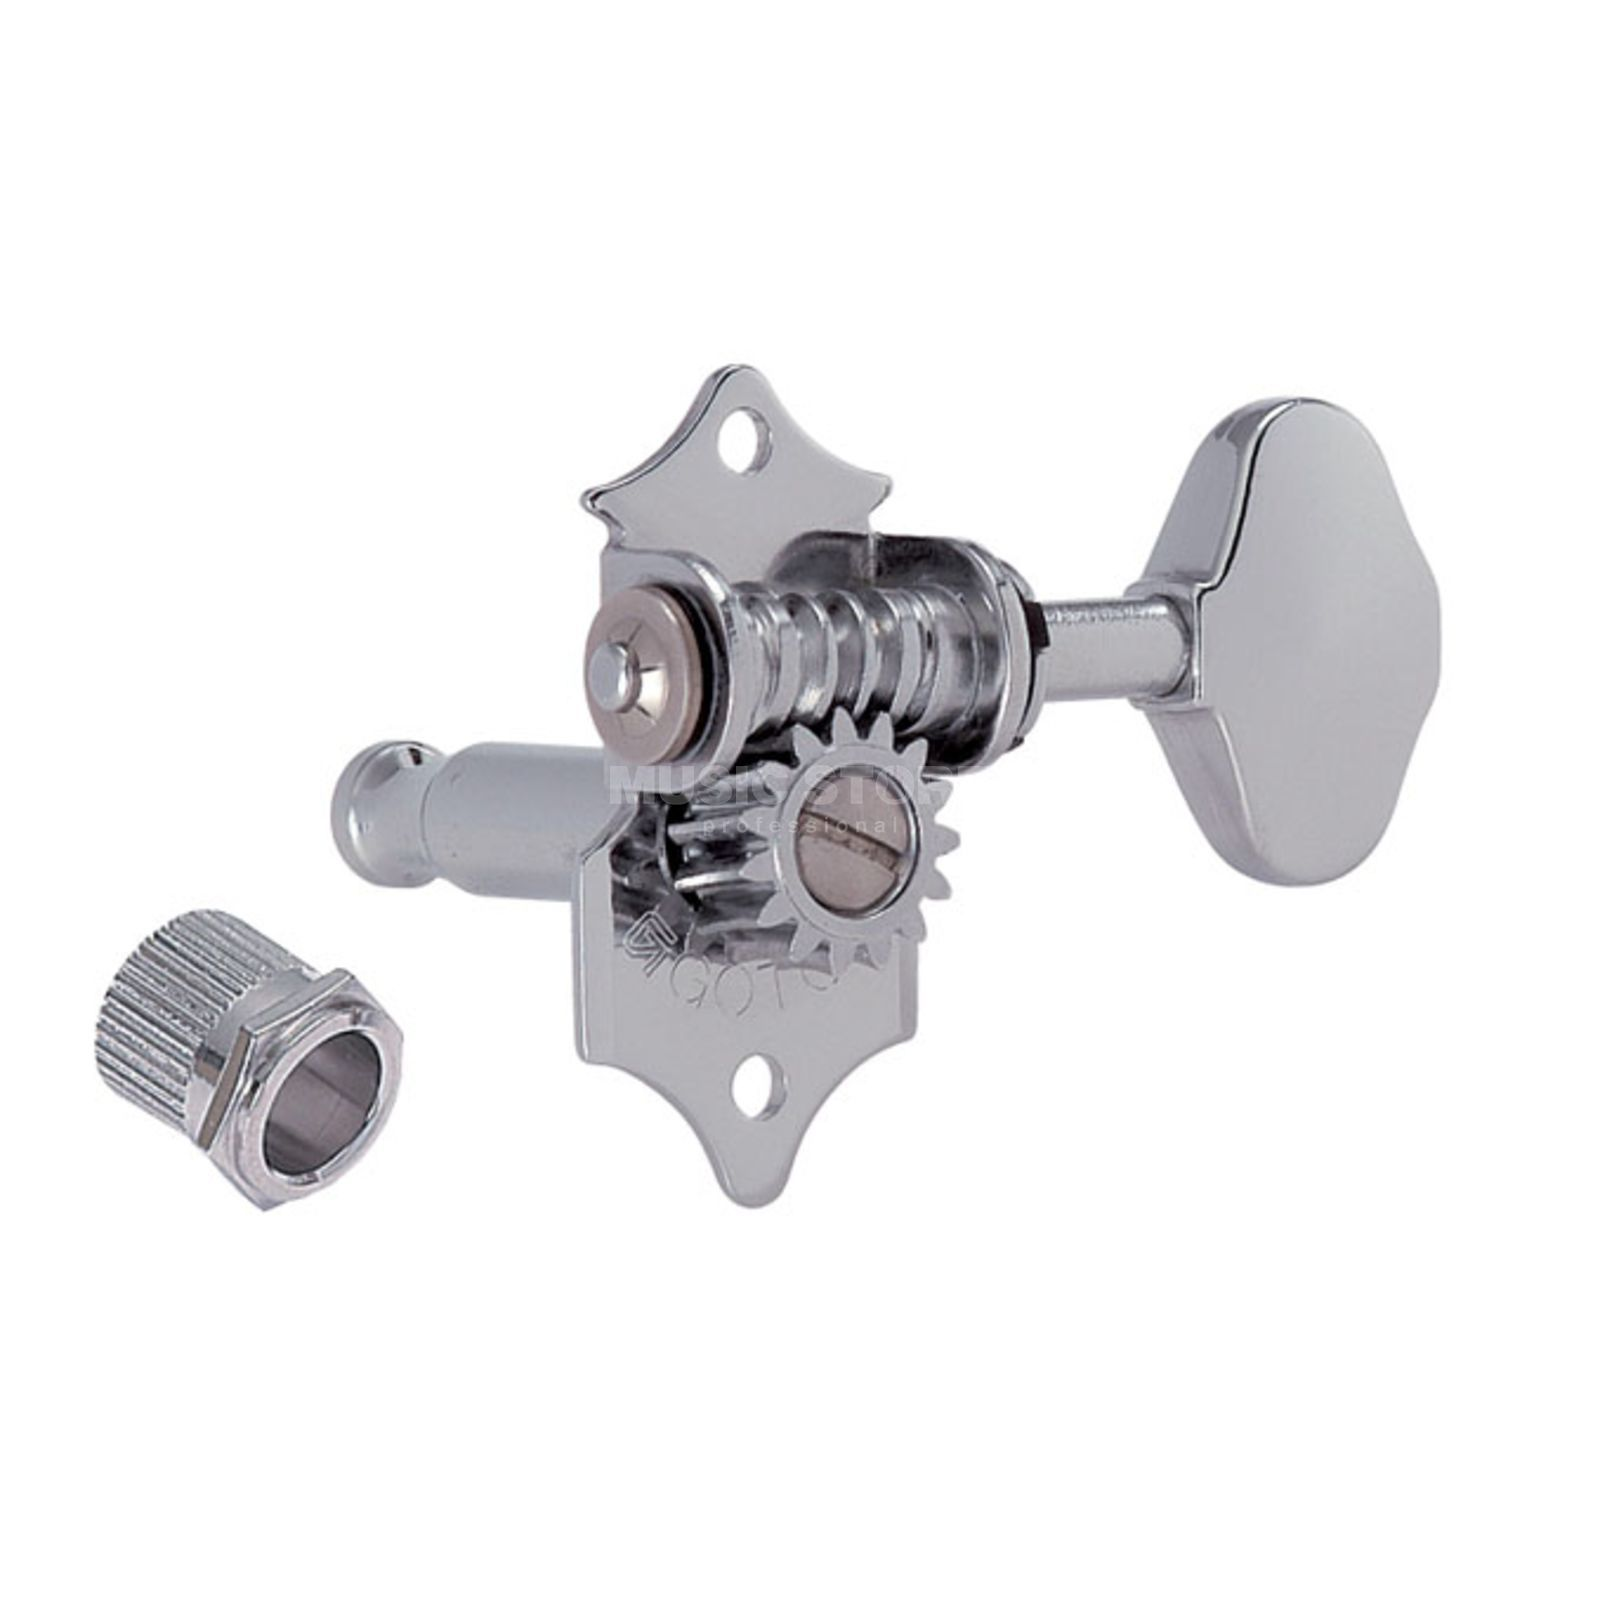 Gotoh SE-700 Mechanik XN 3L 3R 06M Button satin nickel Produktbild